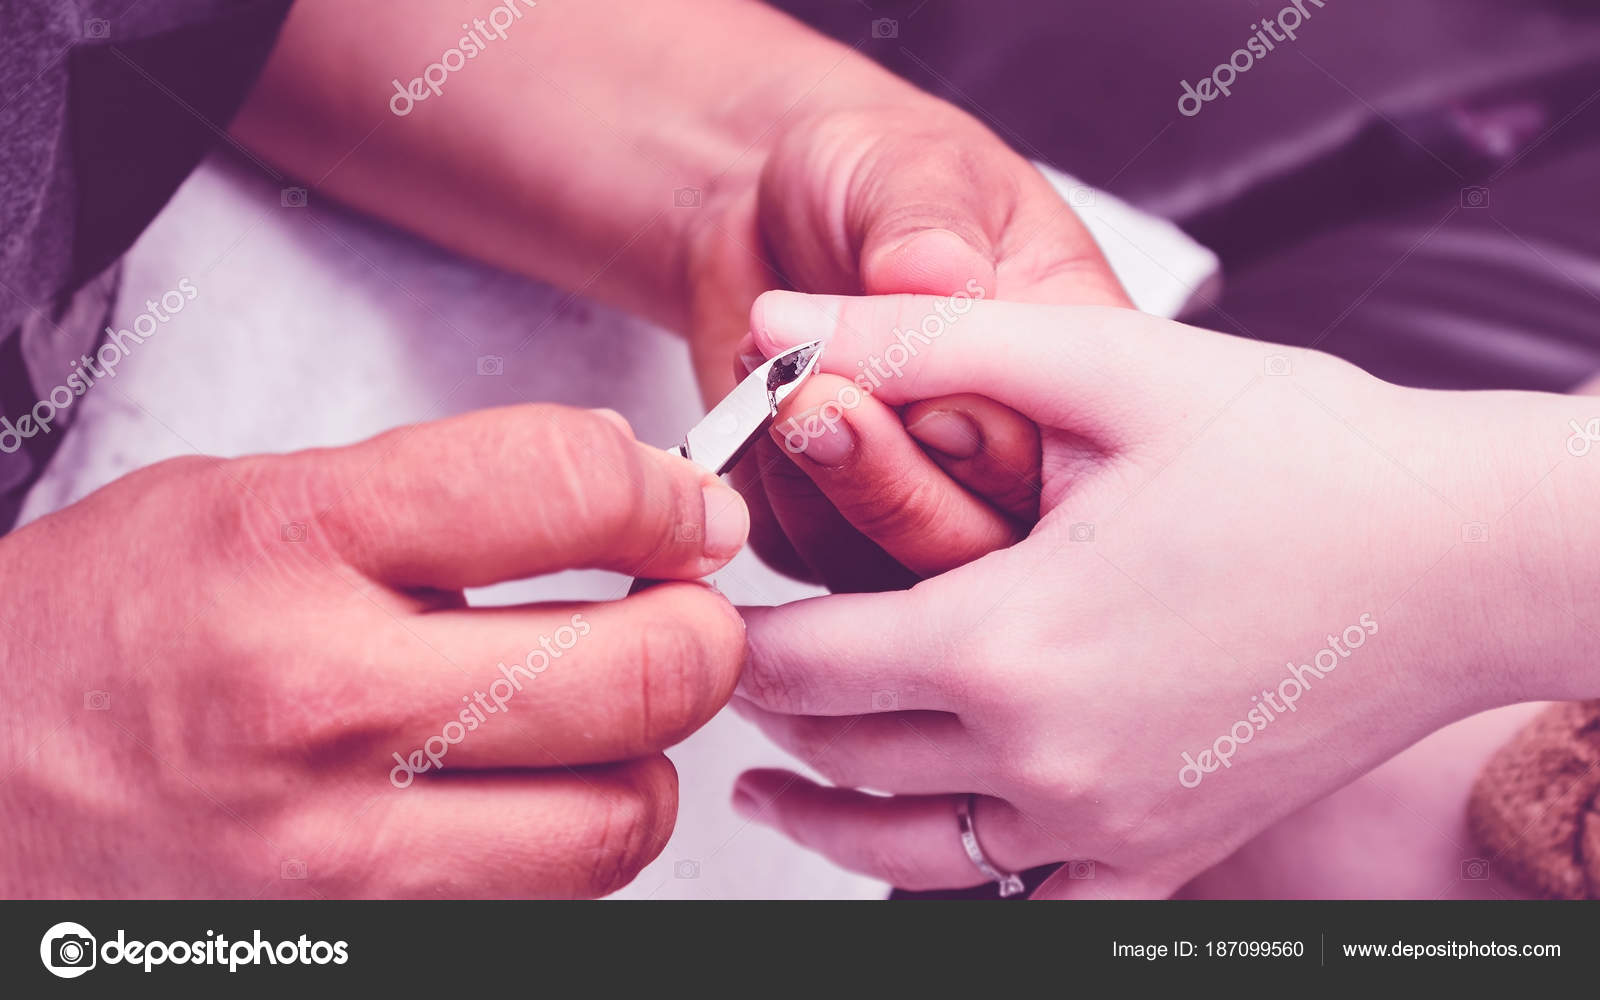 Manicurist using pliers to remove dead skin from around the clie ...